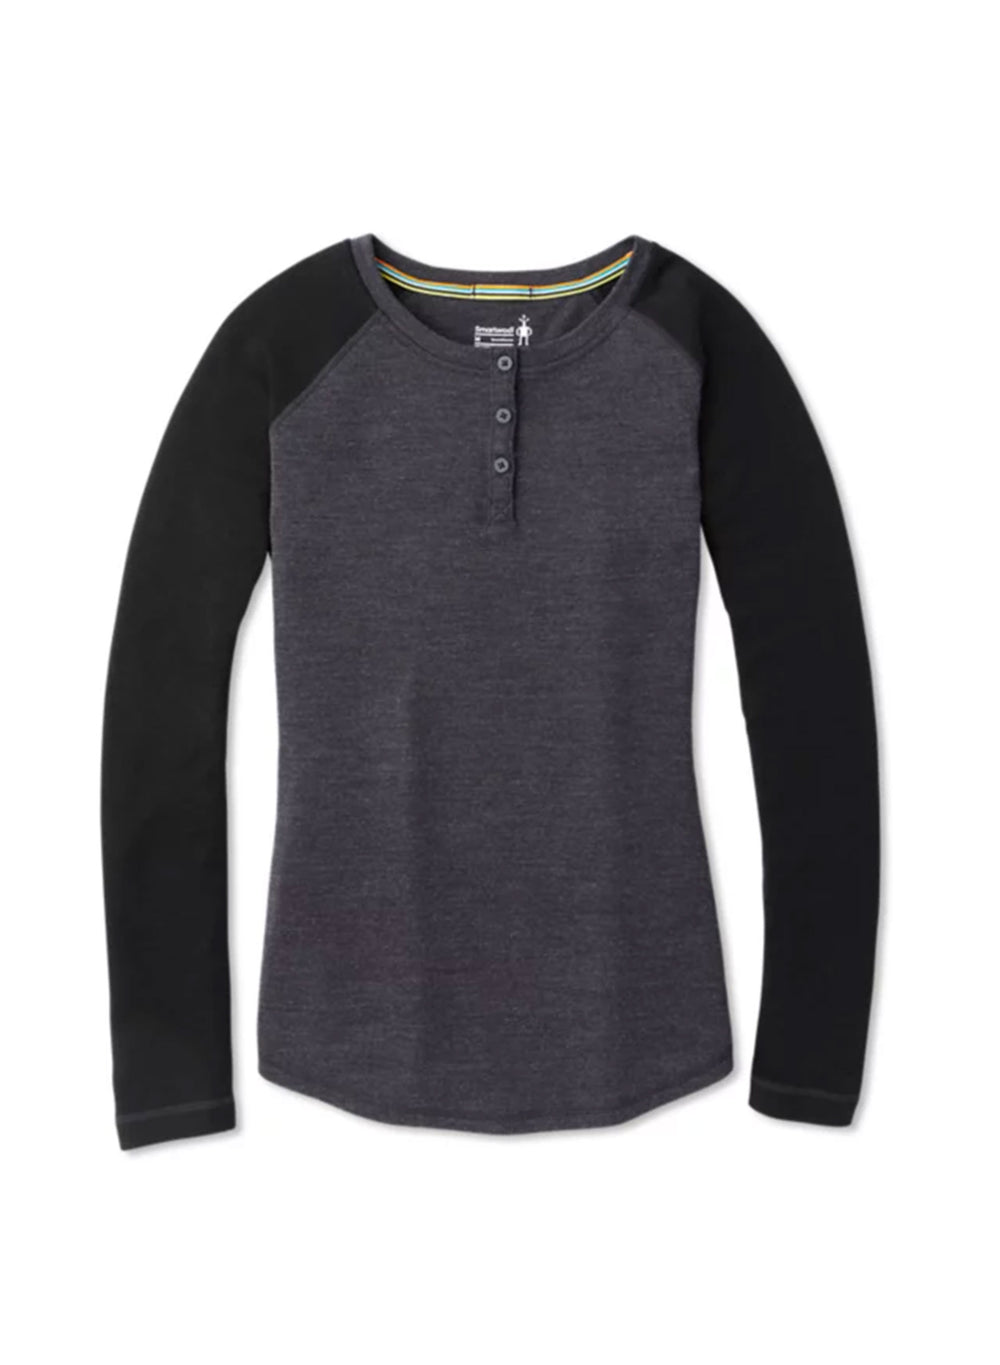 Smartwool Merino 250 Travel Henley - Women's